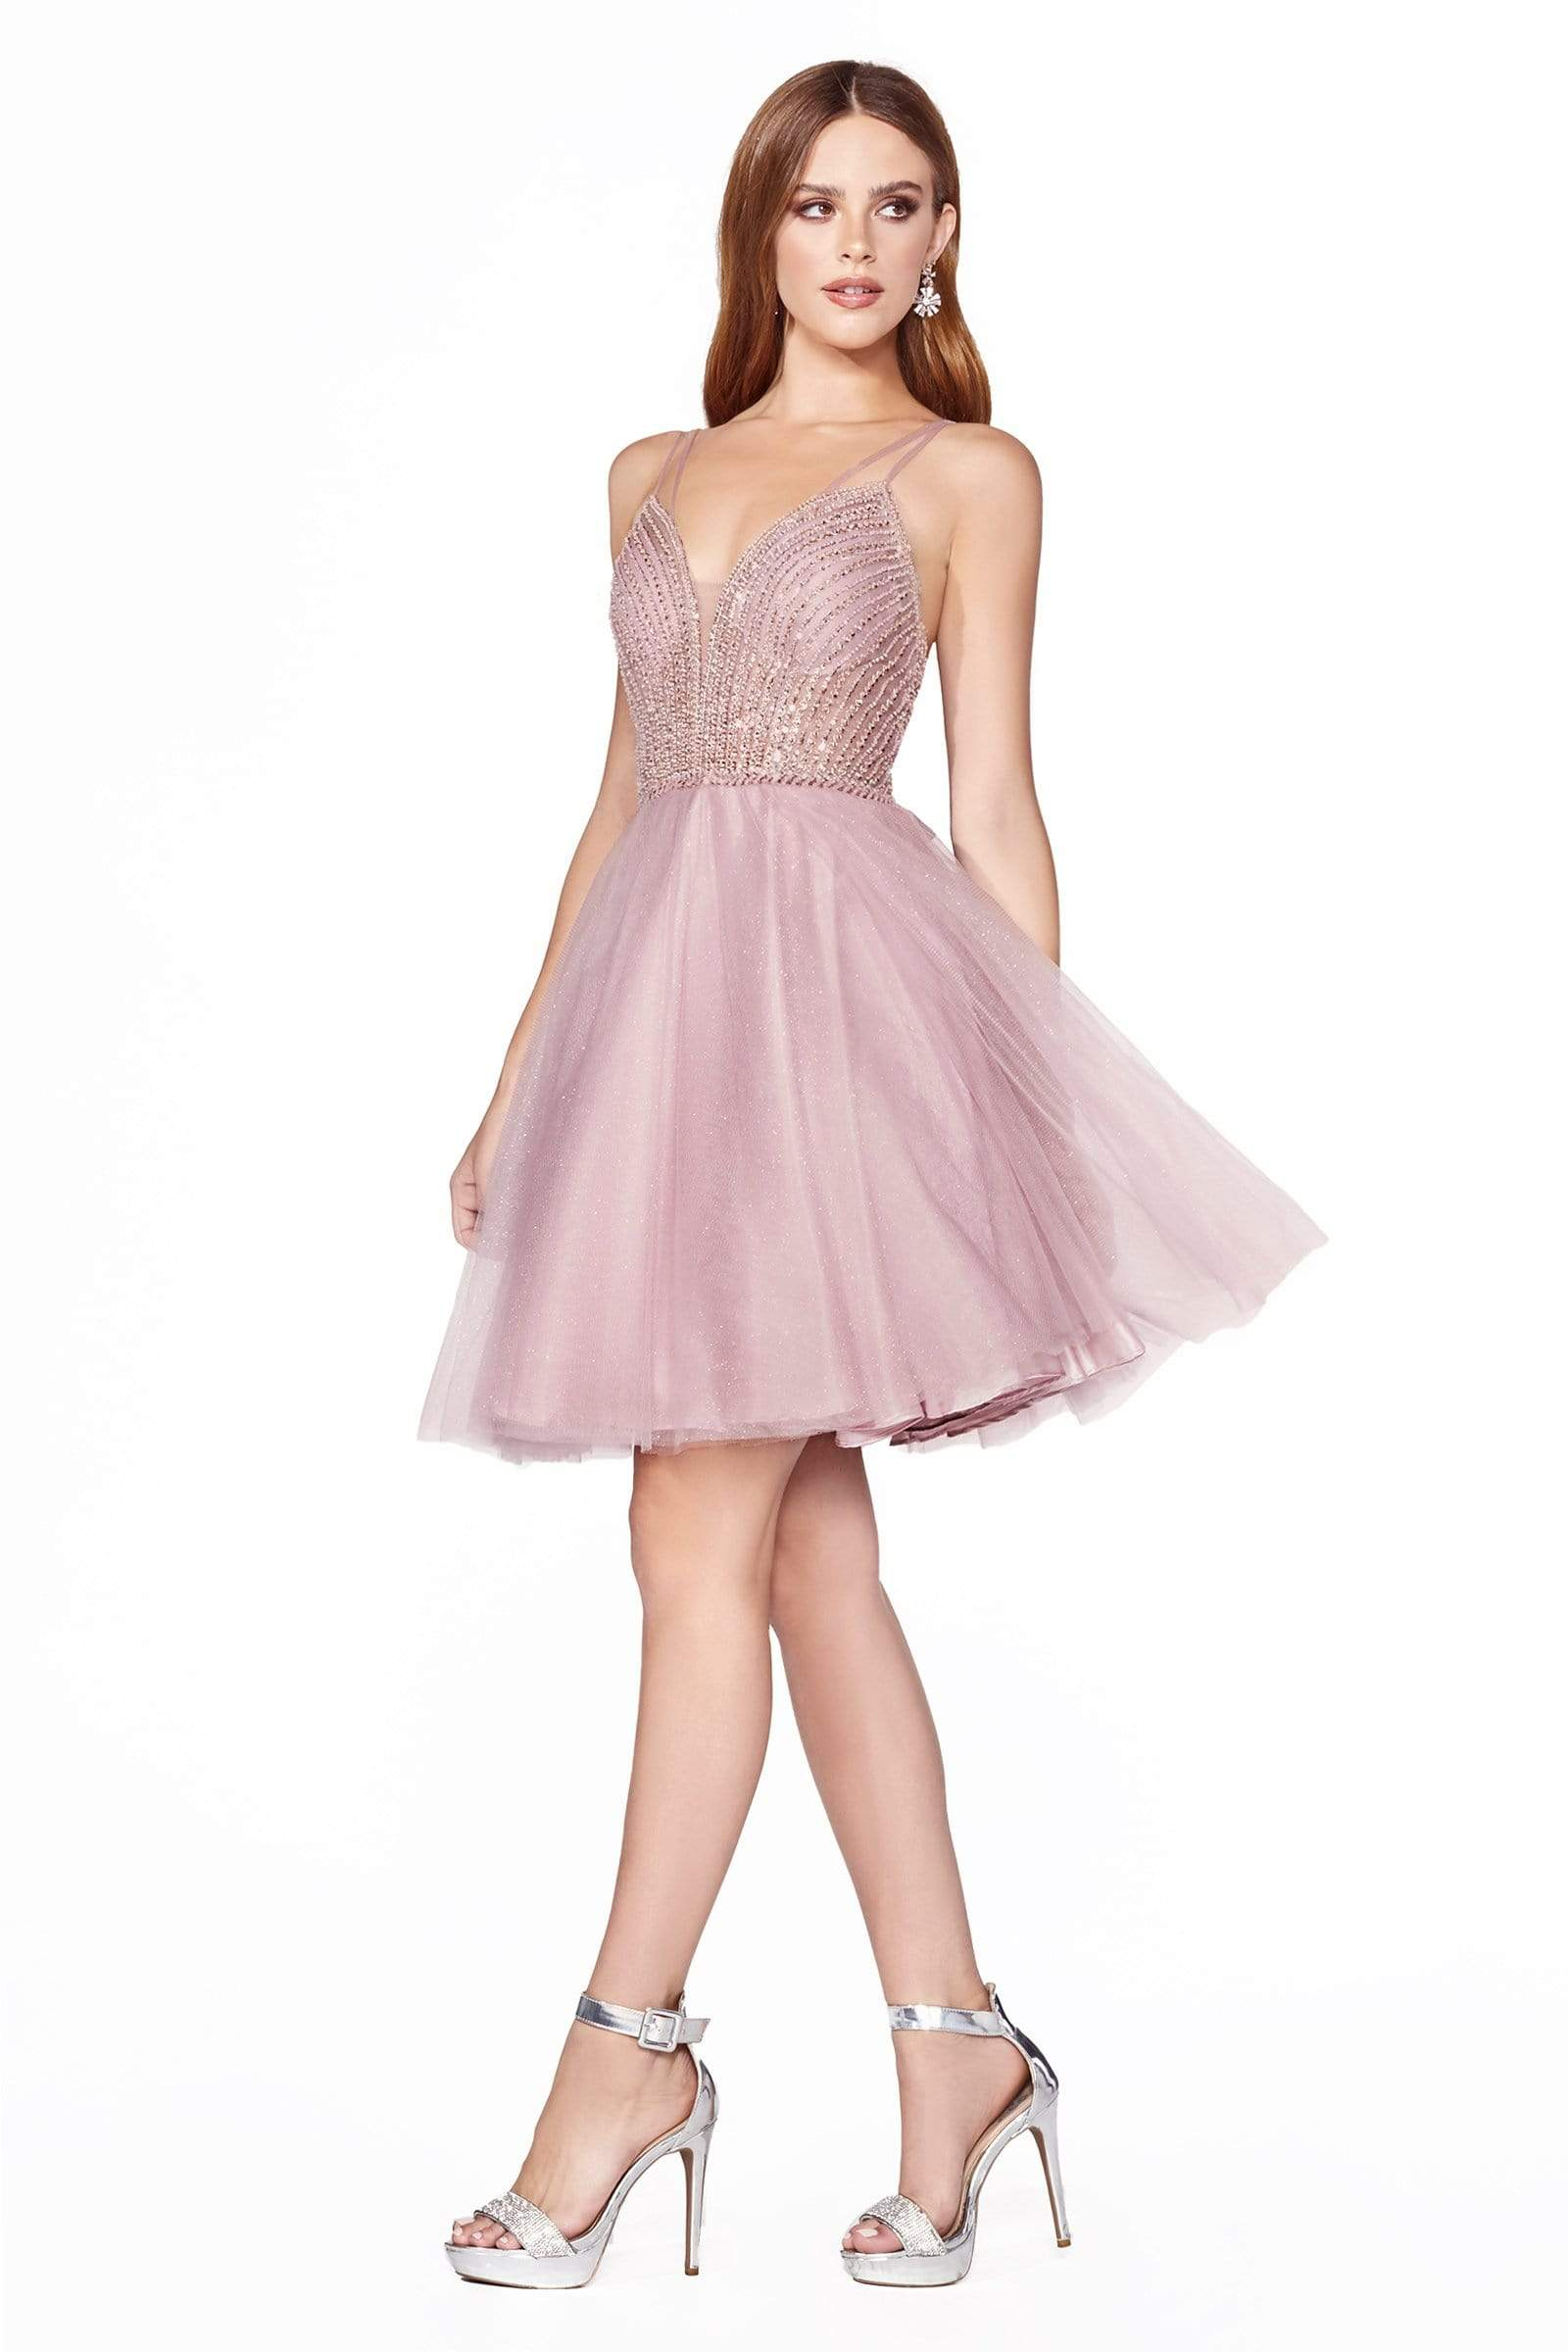 Cinderella Divine - CD0148 Beaded Embellished Fit and Flare Dress Party Dresses XXS / Mauve